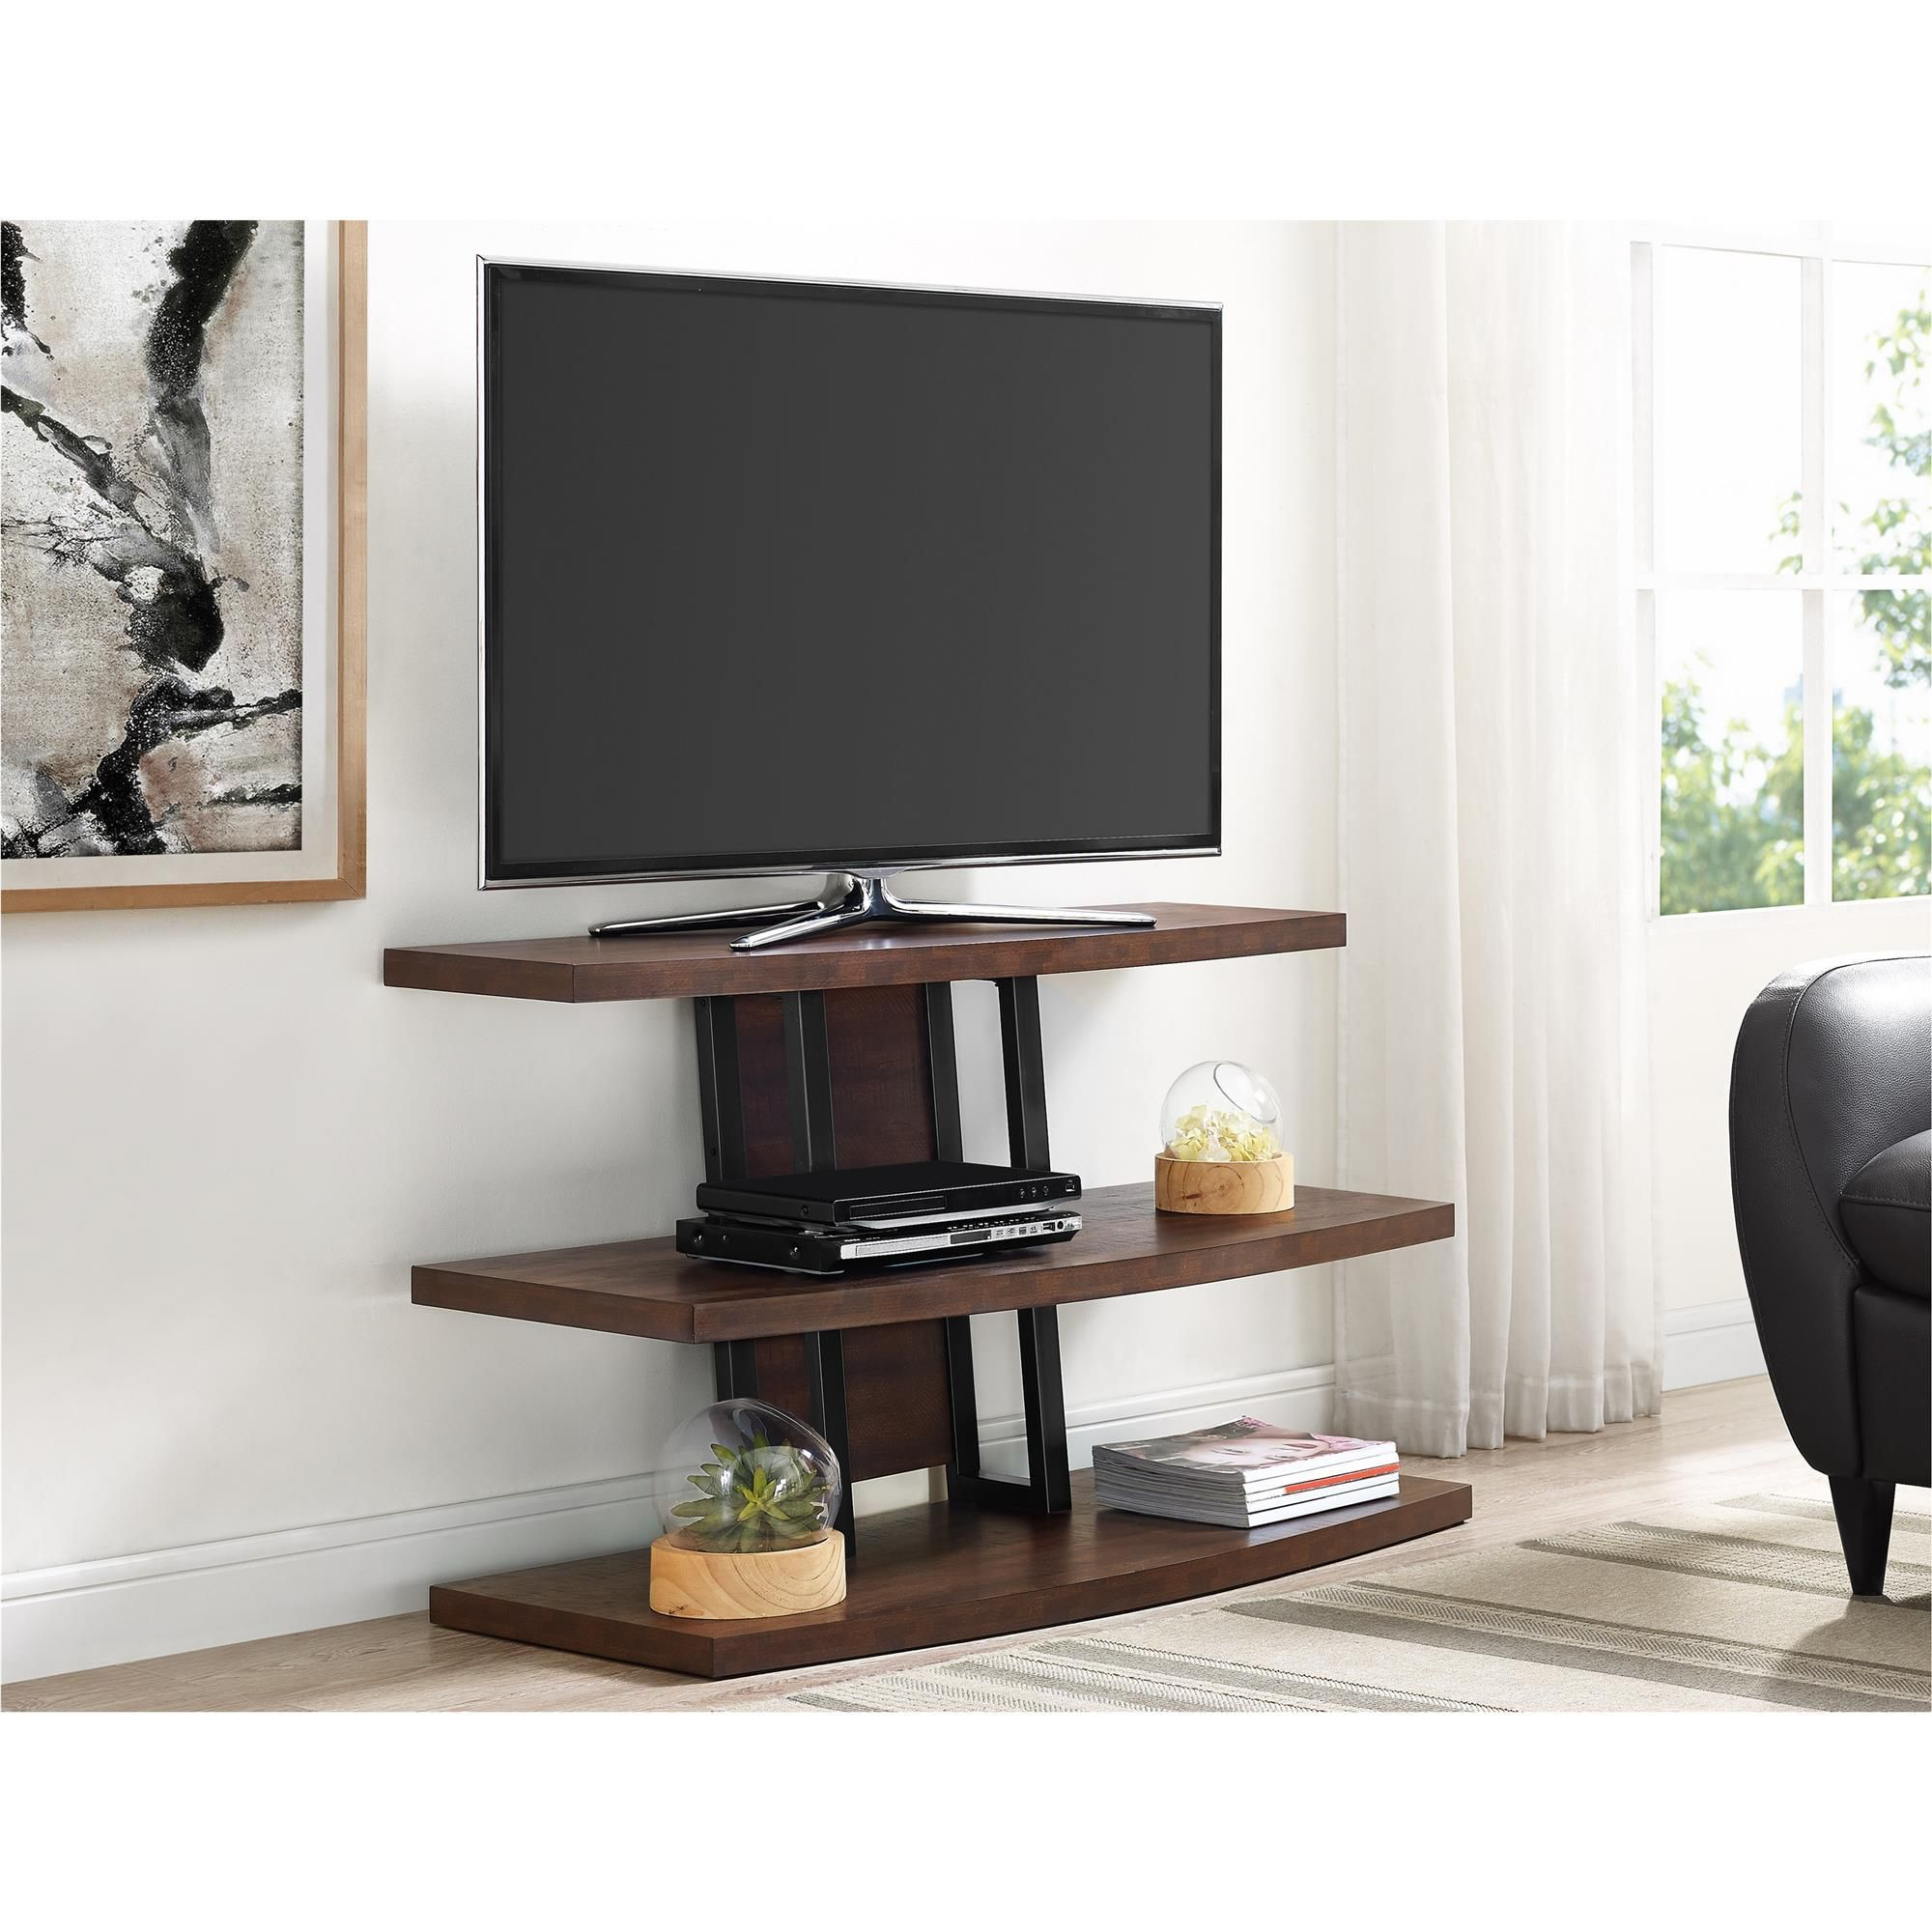 27 Best Tv Stand Ideas For Small Spaces Tags Small Bedroom Tv Stand Ideas Tv Stand Color Floating Shelves Living Room Living Room Tv Stand Living Room Tv